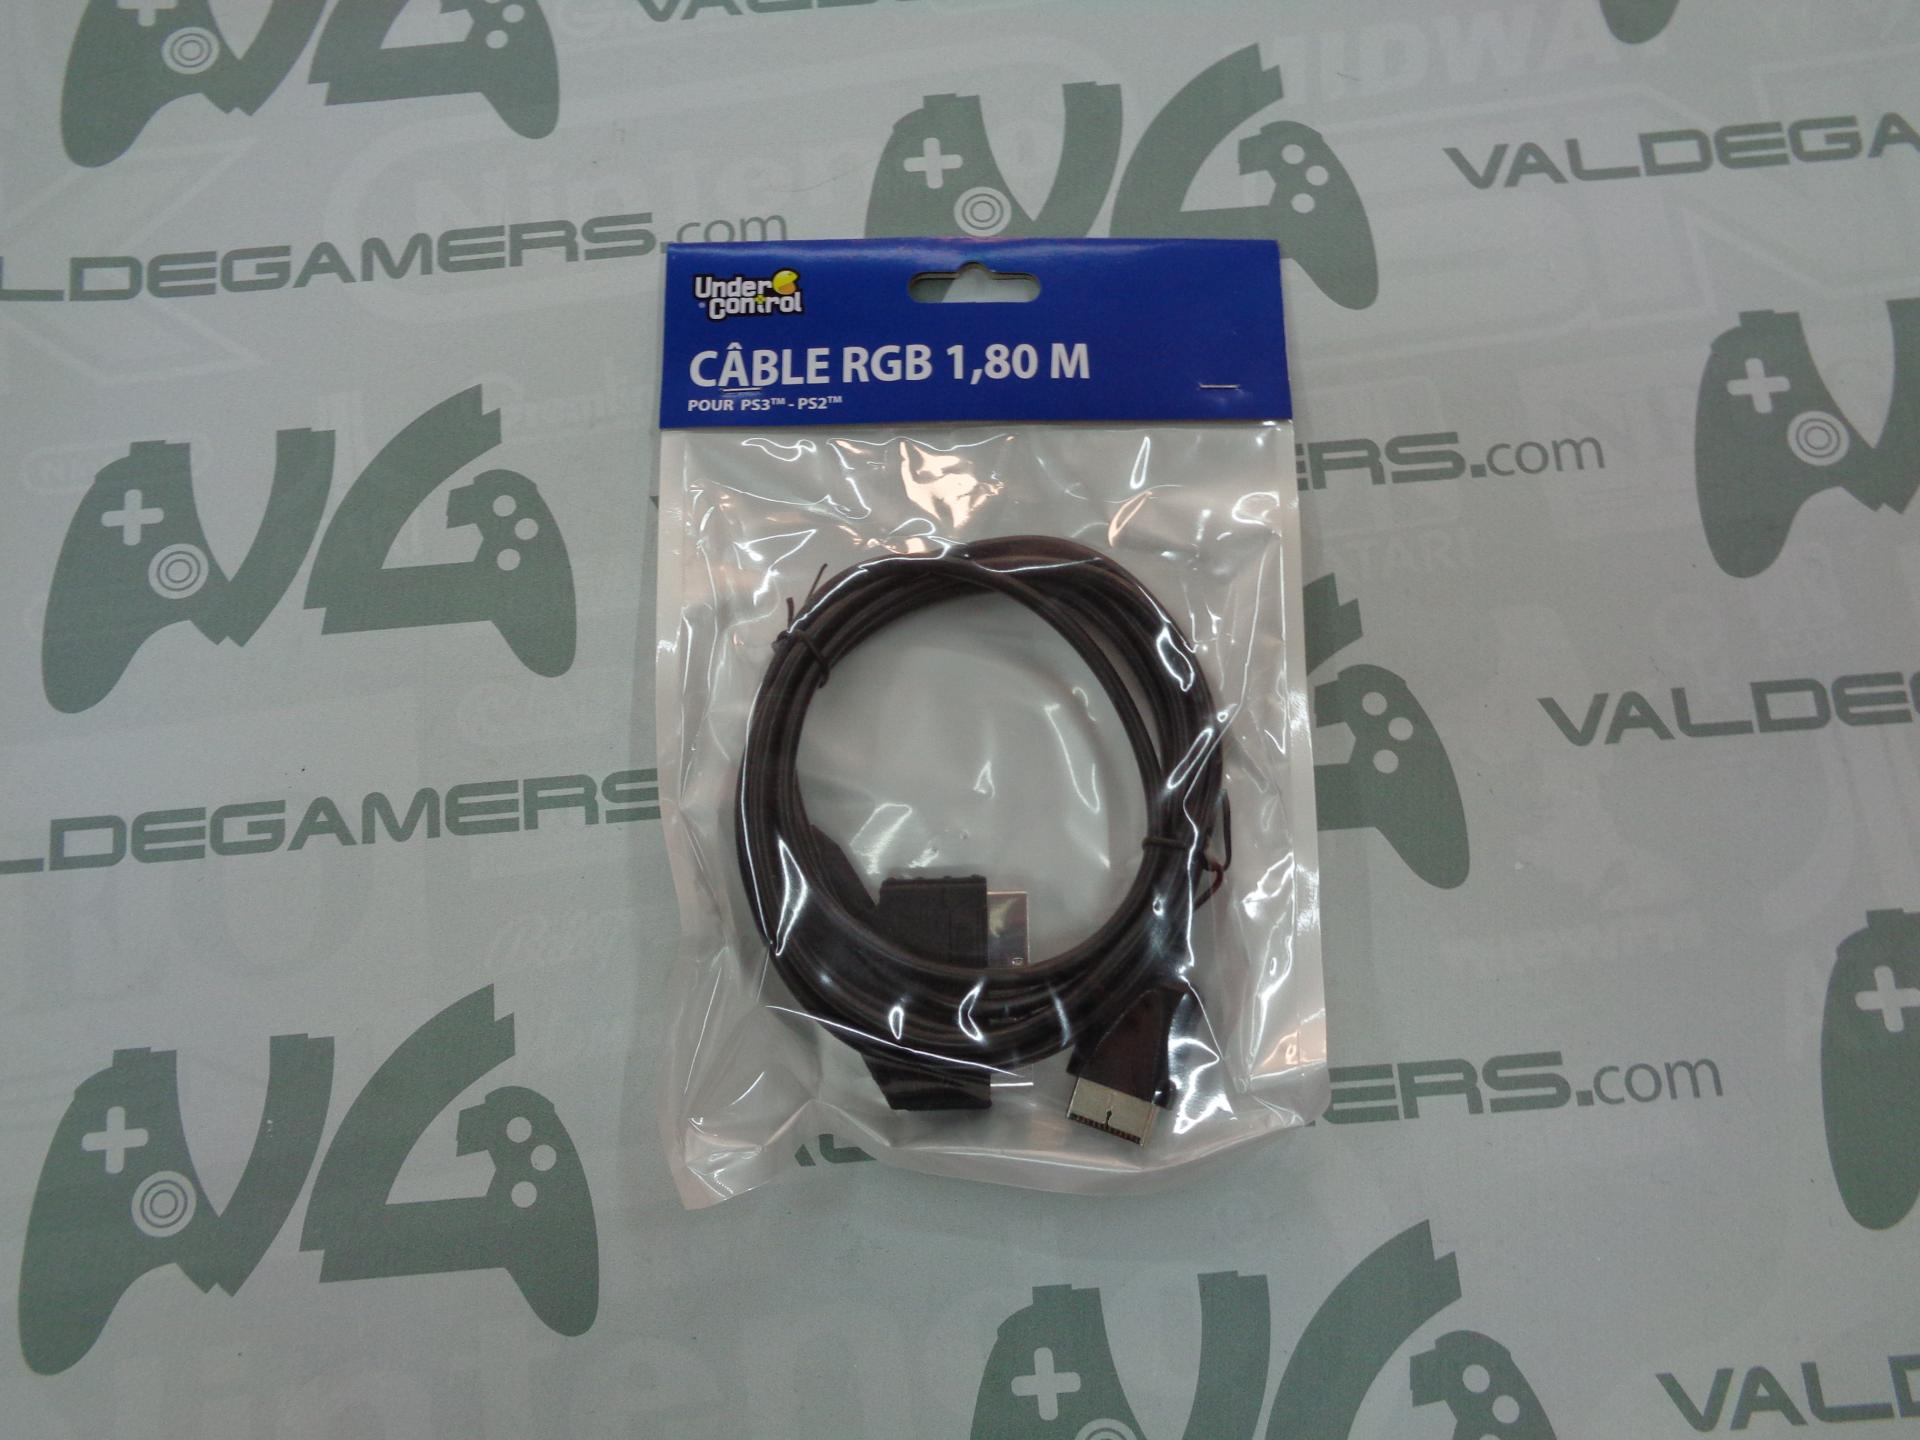 Cable RGB PS1 / PS2 / PS3 - NUEVO